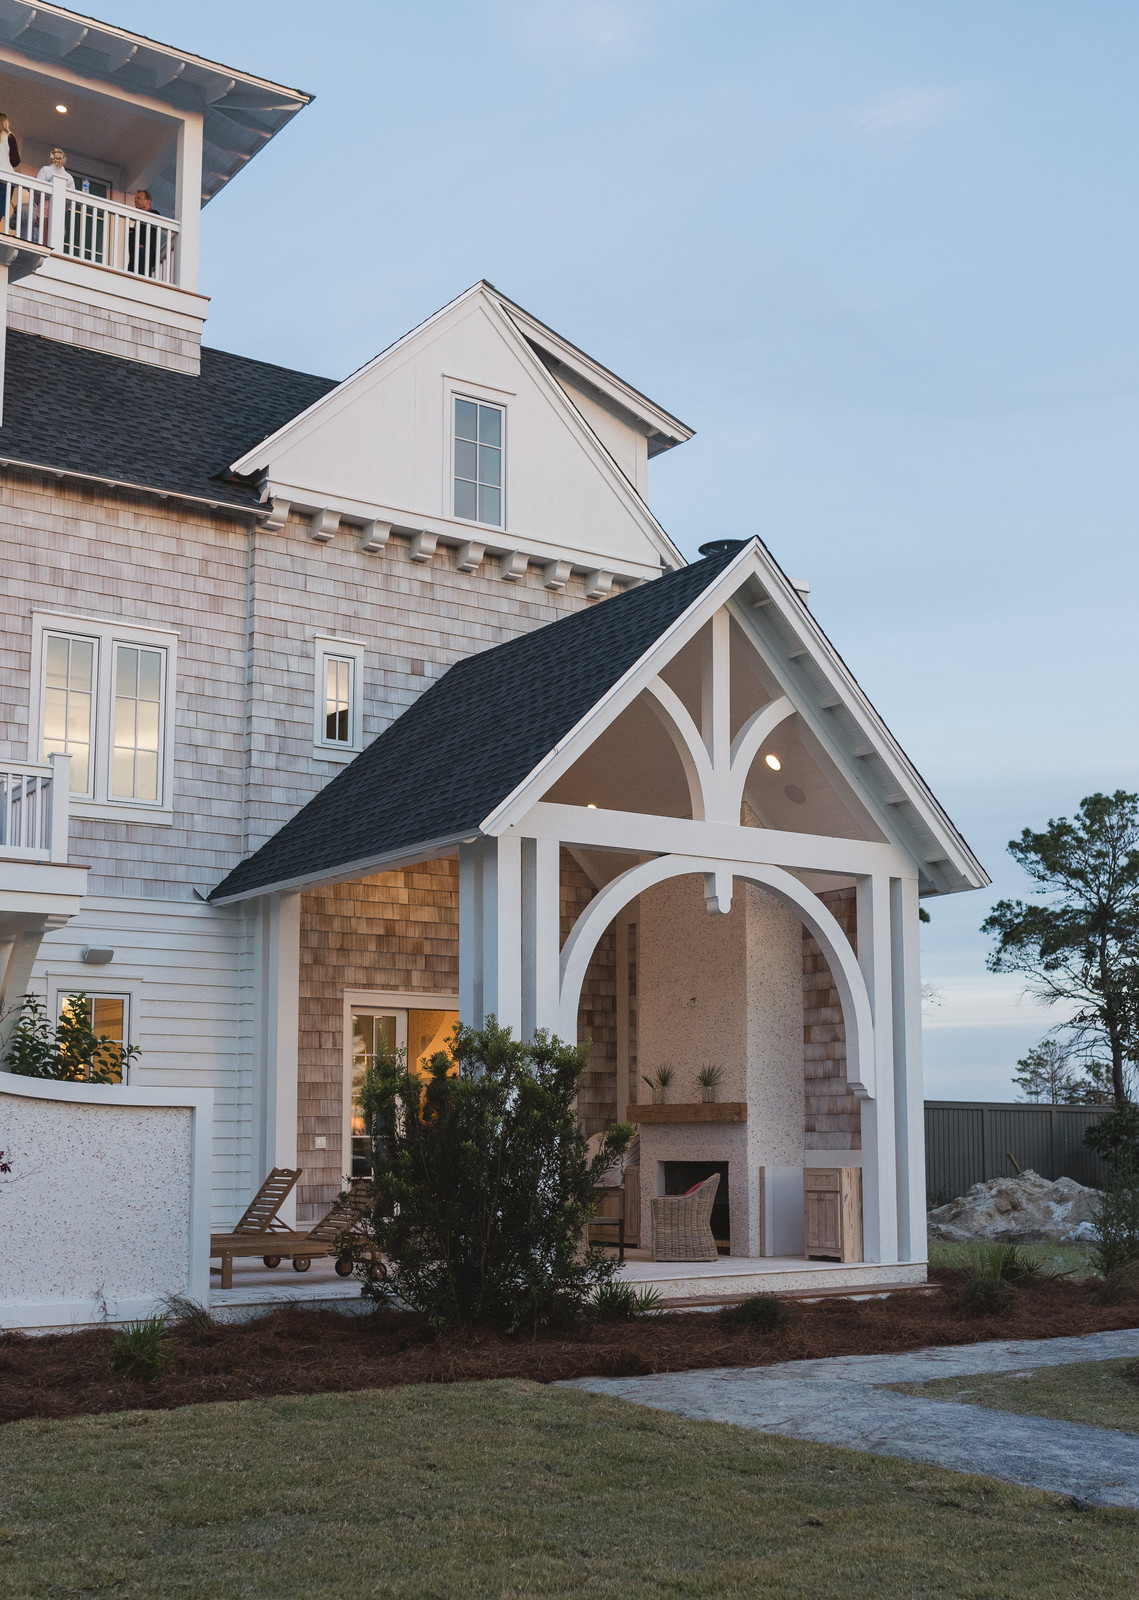 30a Beach Homes For Sale Grace Point On 30a United